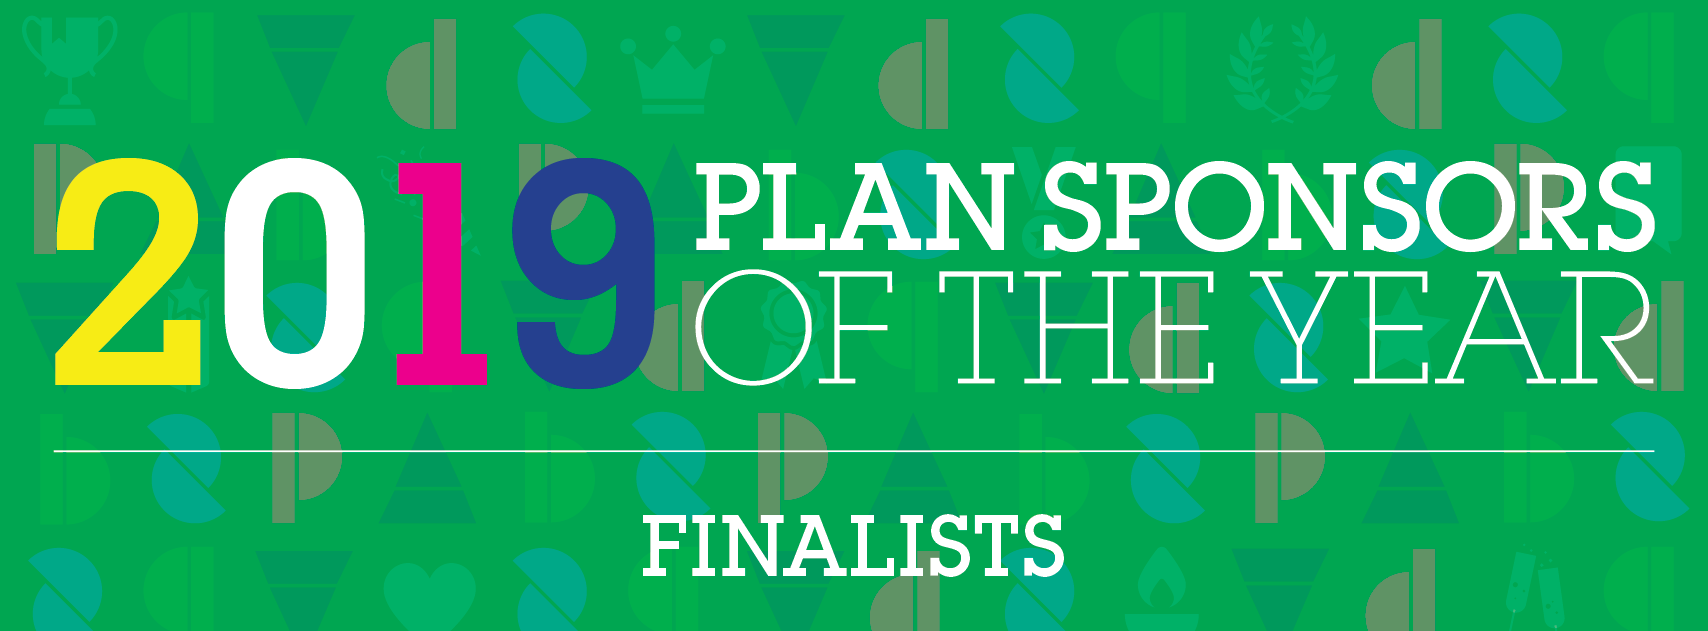 Plan Sponsor of the Year